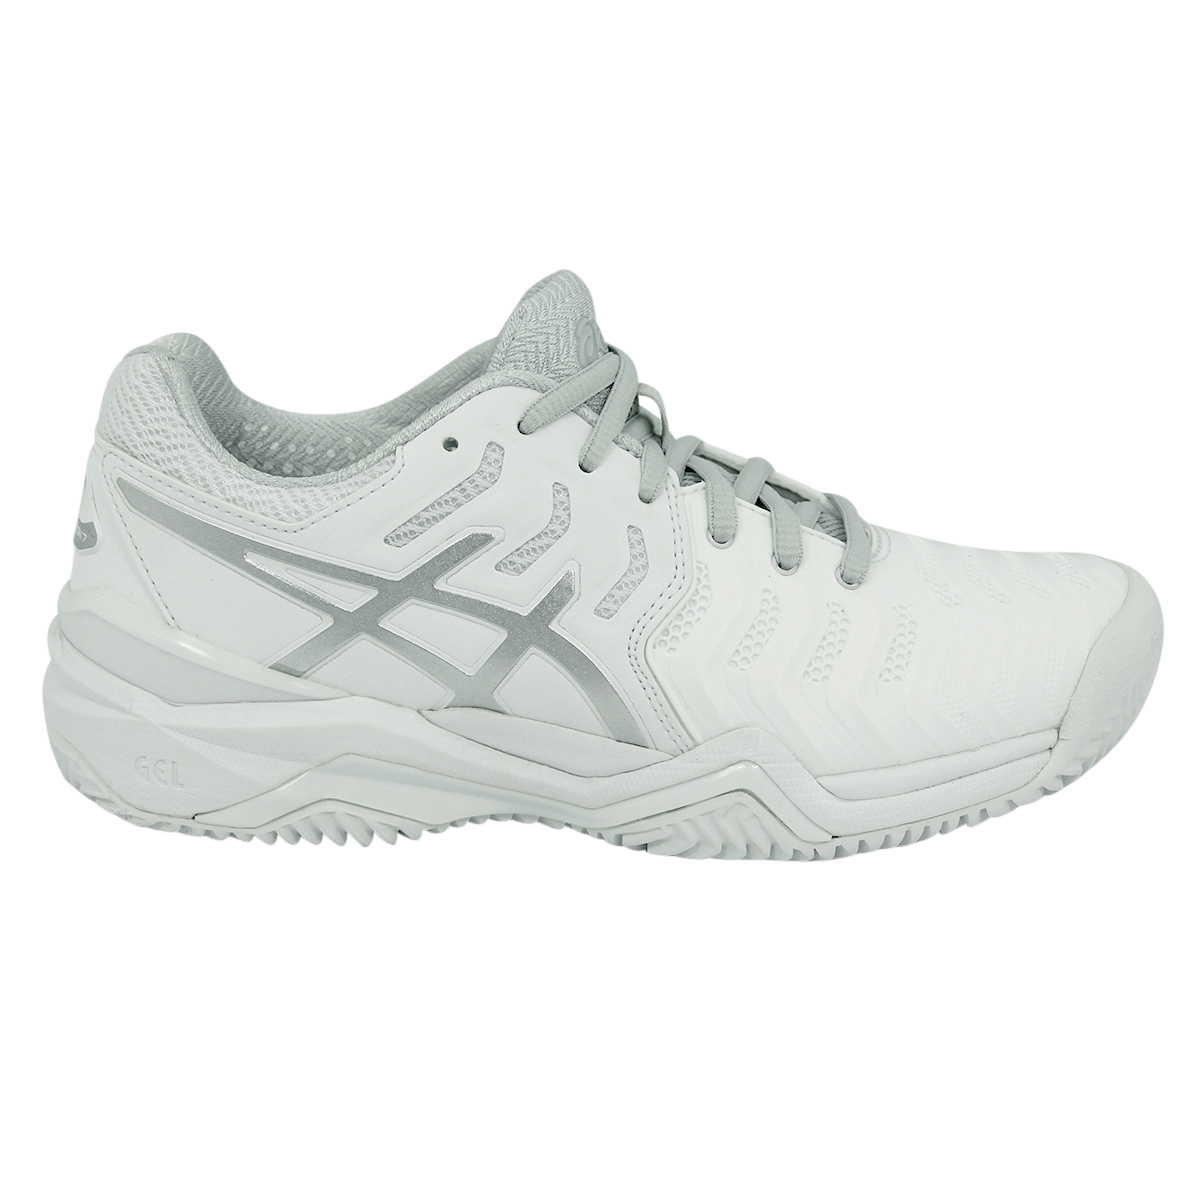 new style 03993 5d831 Chaussures de tennis GEL RESOLUTION 7 CLAY